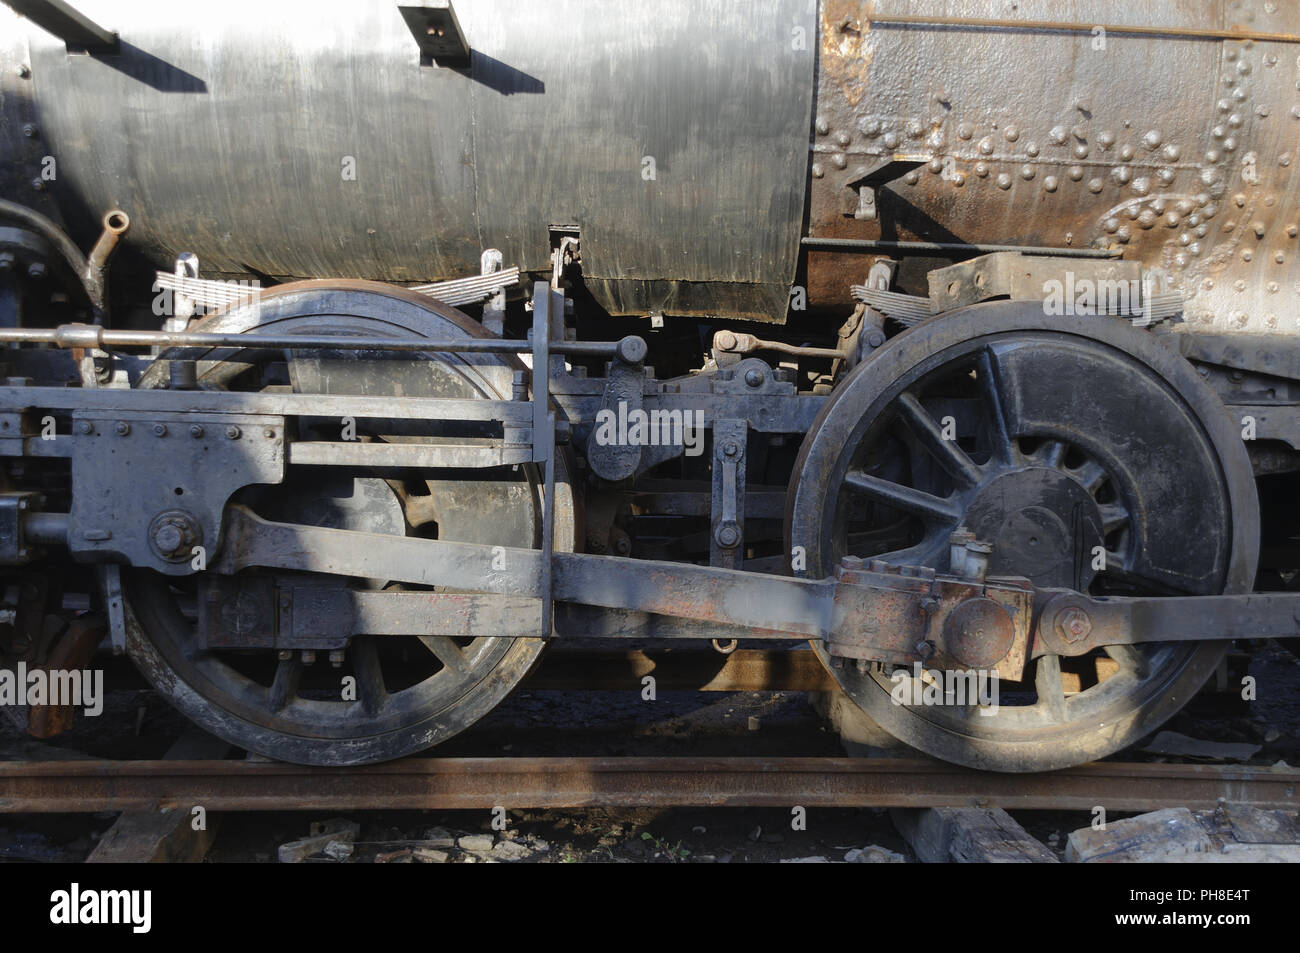 Wheels from a old steam train. Stock Photo